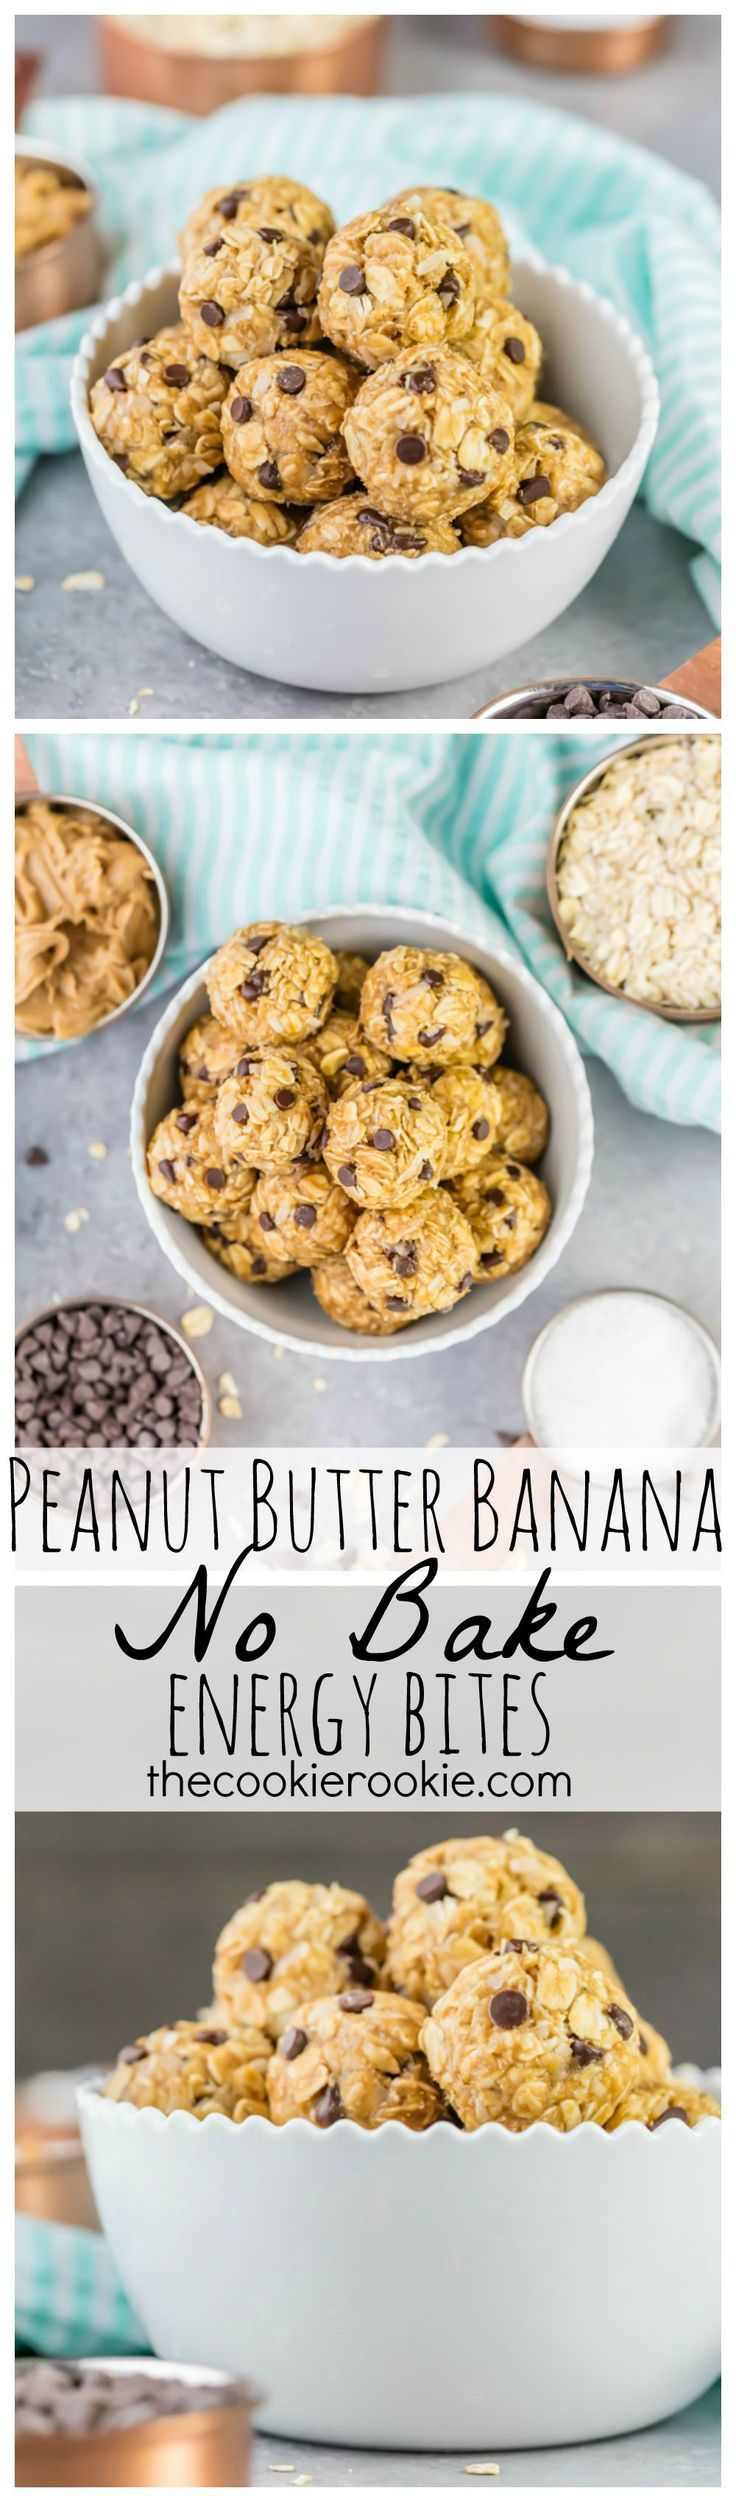 Peanut butter banana no bake energy bites are the perfect for Easy sweet treats with peanut butter